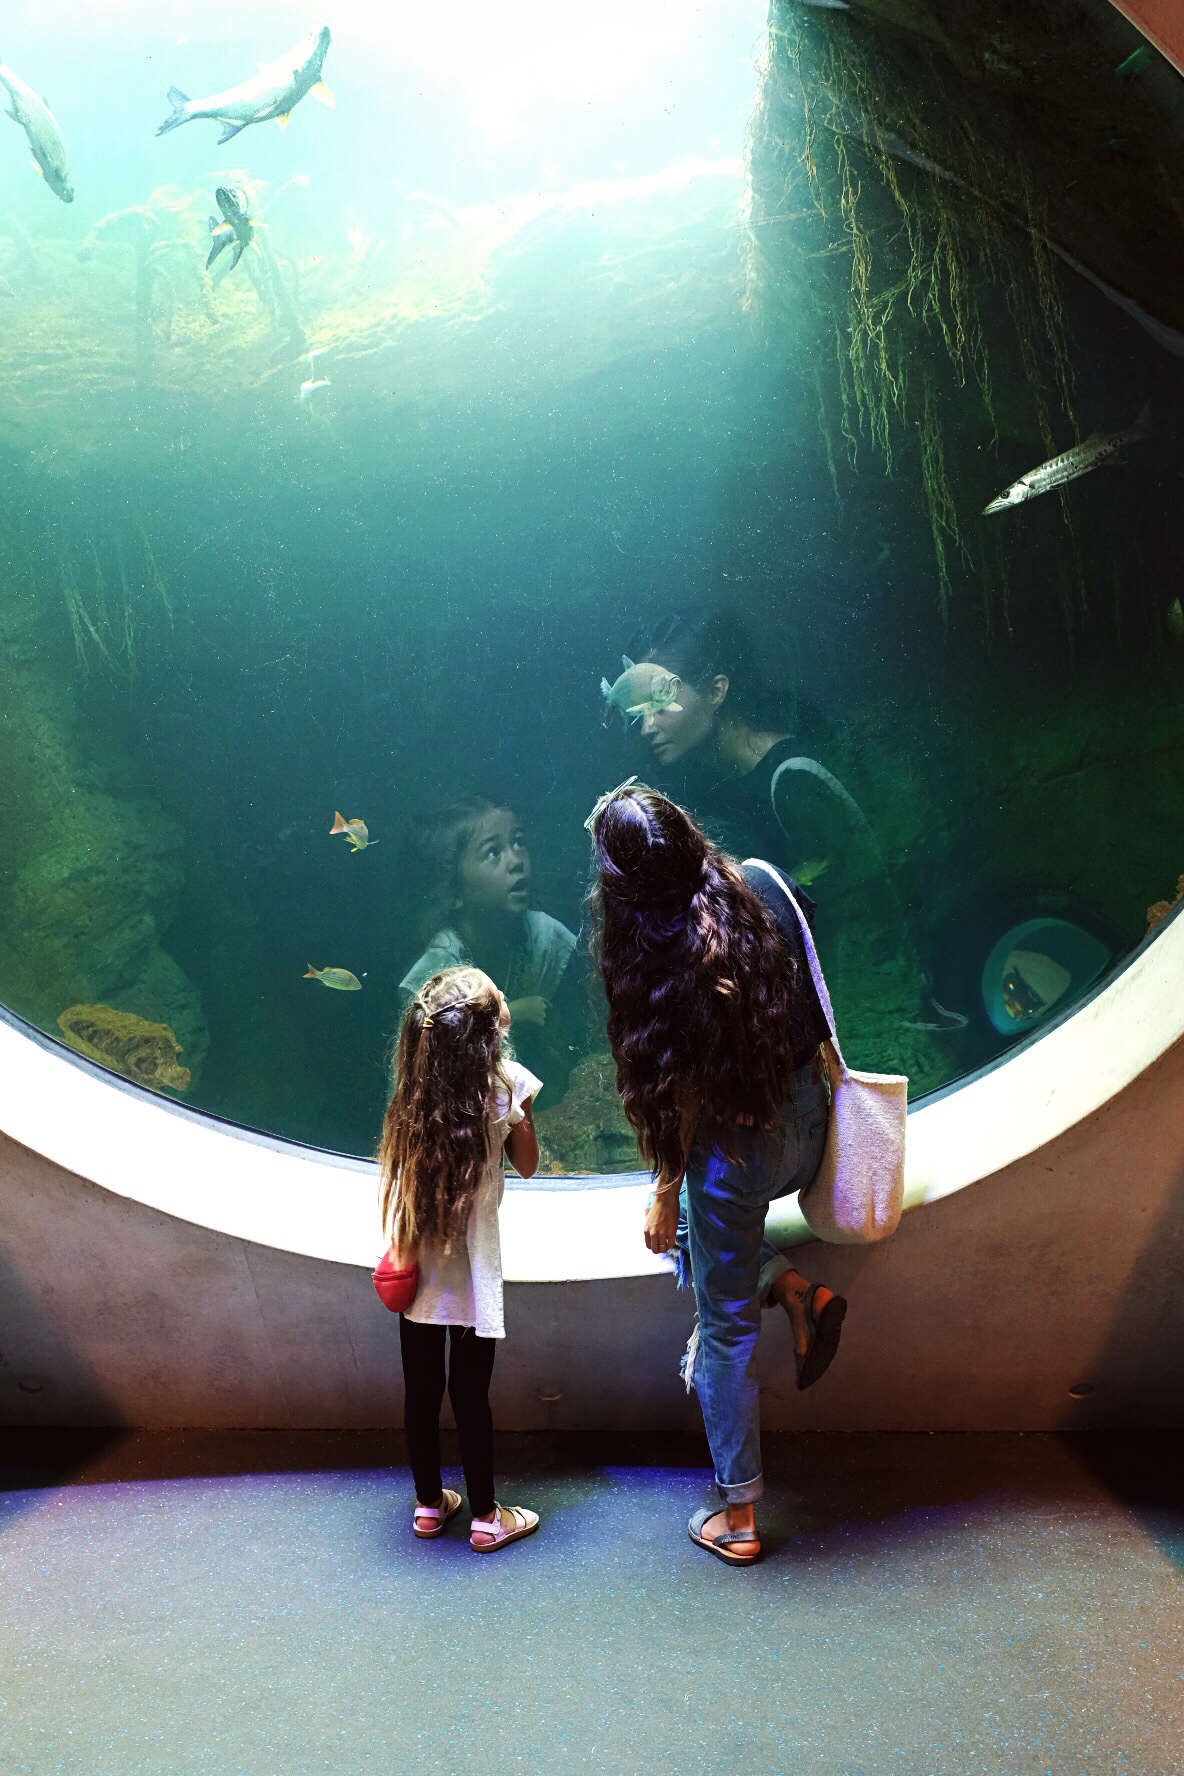 VISIT FLORIDA: A List Of The Best Family Friendly Activities In South Florida